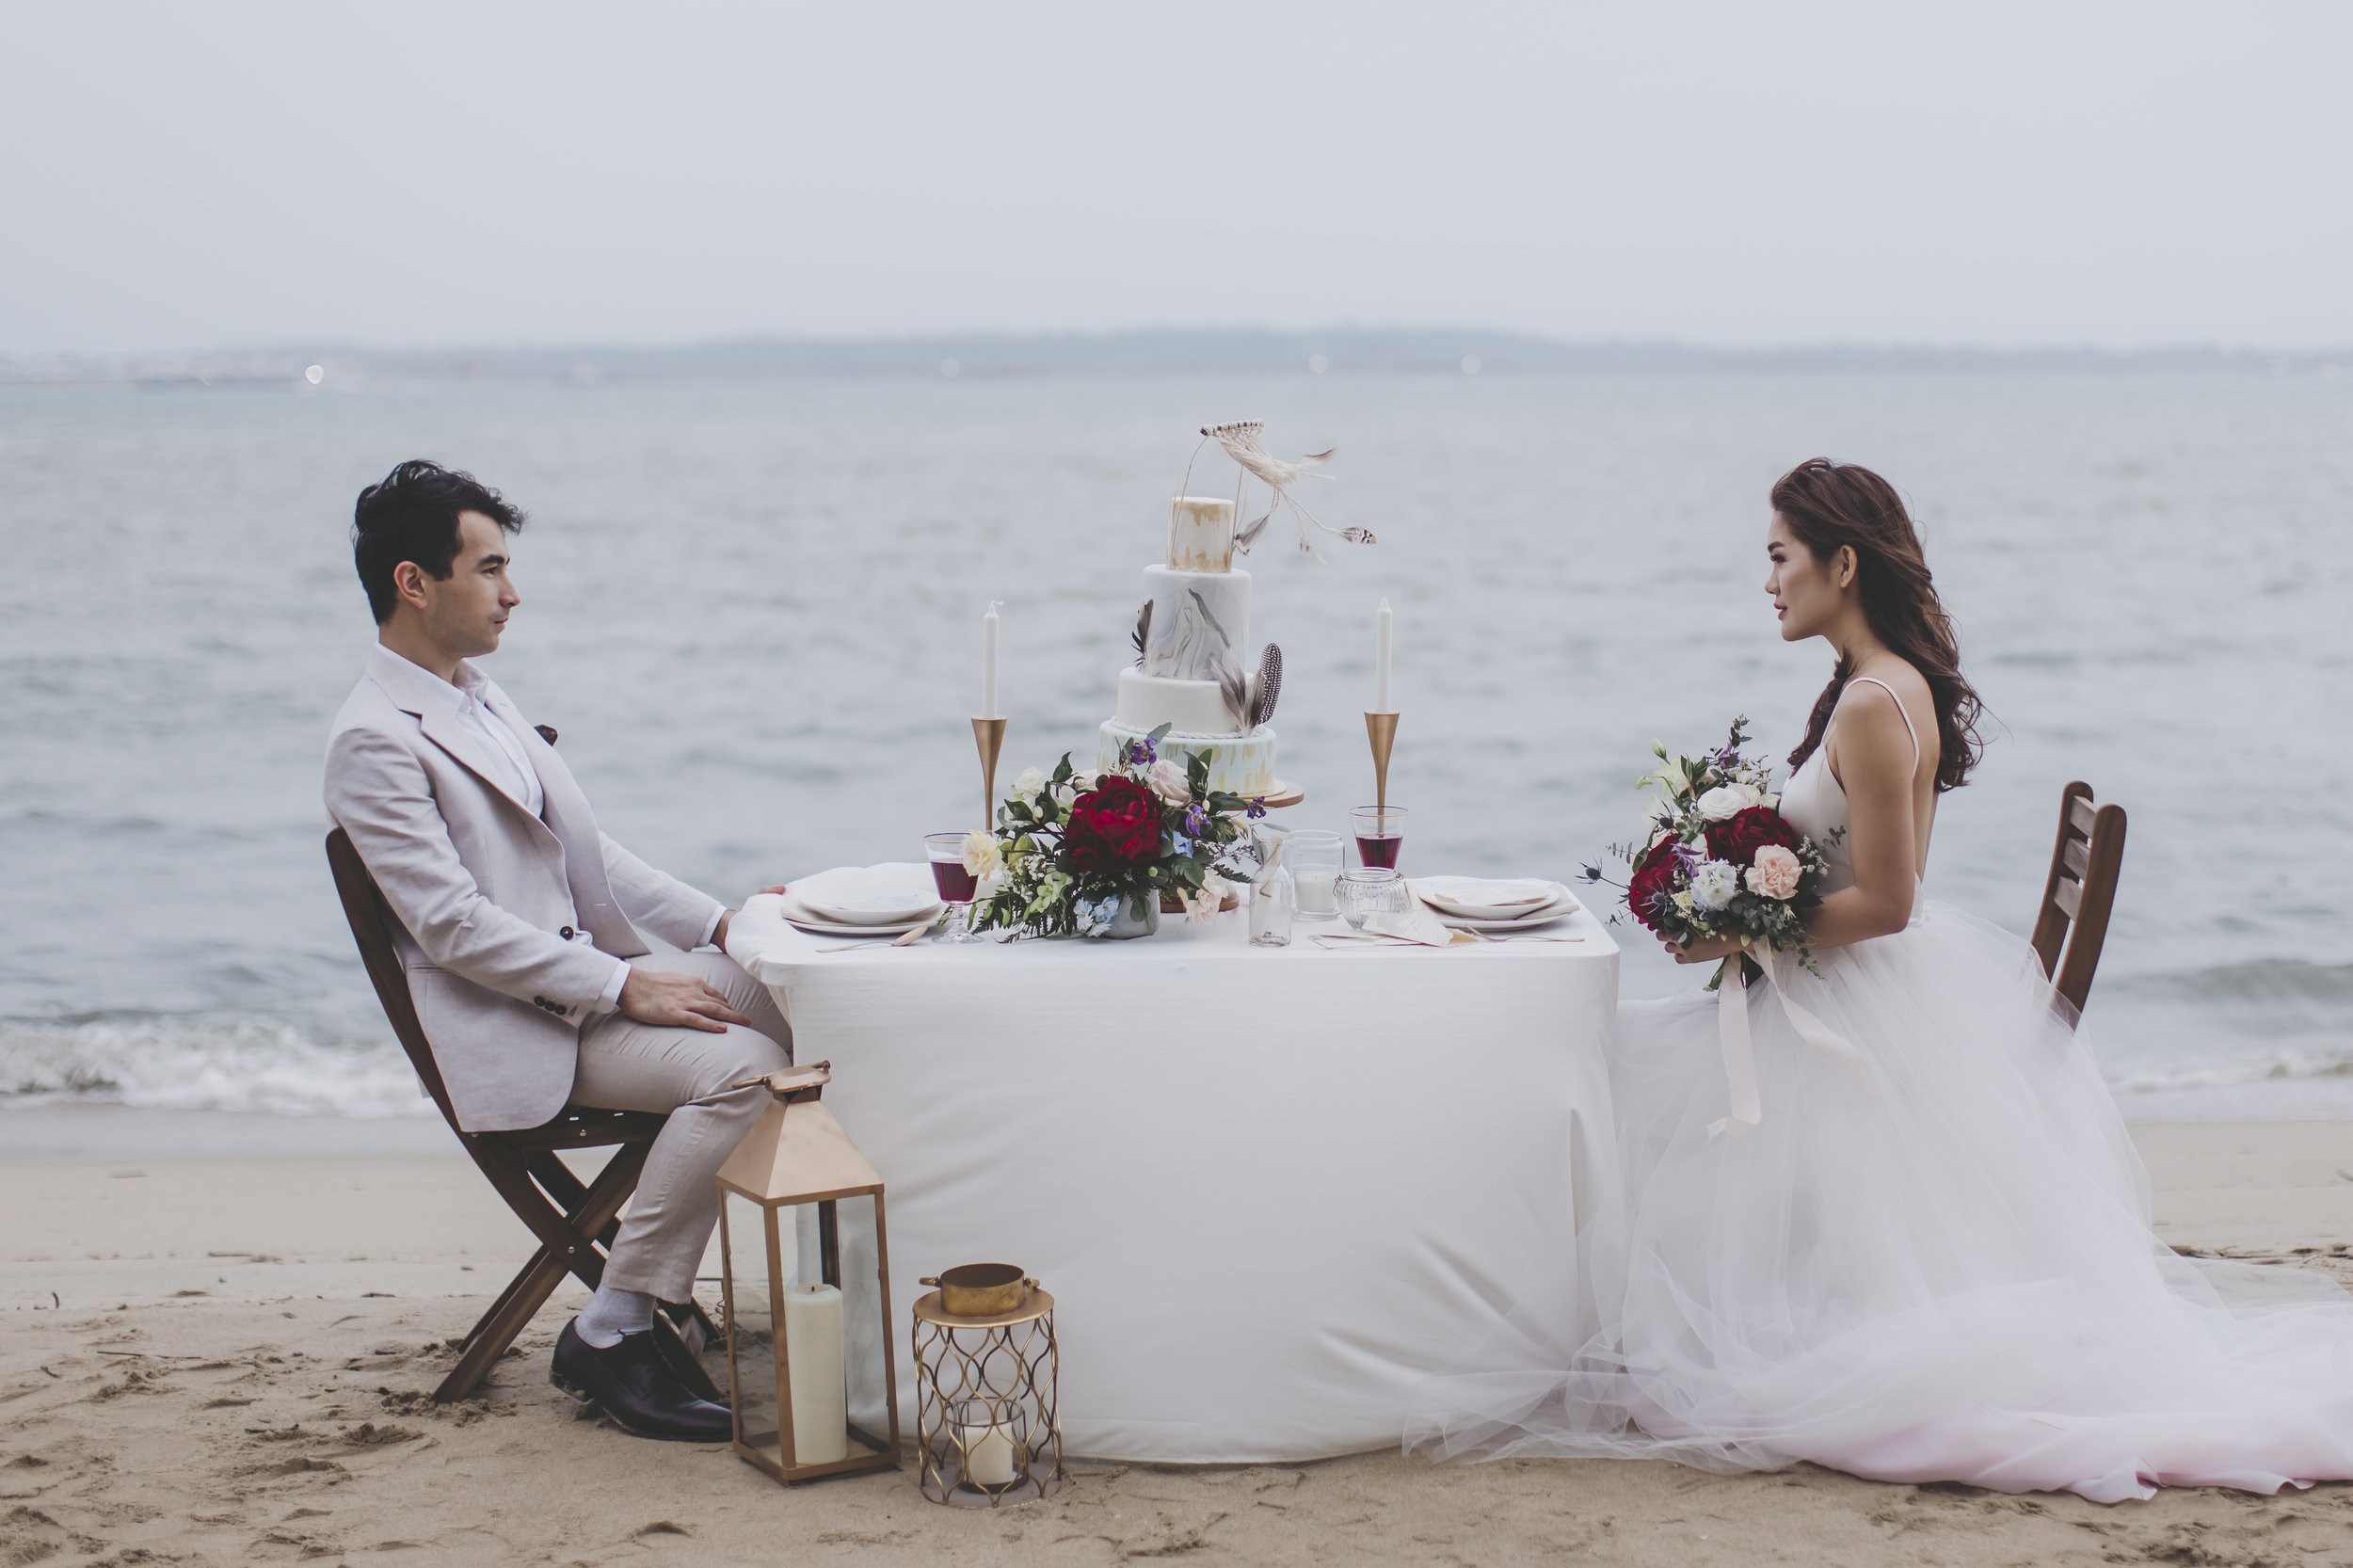 10 MODERN NEW WAYS TO UPDATE YOUR BOHEMIAN WEDDING SHOOT